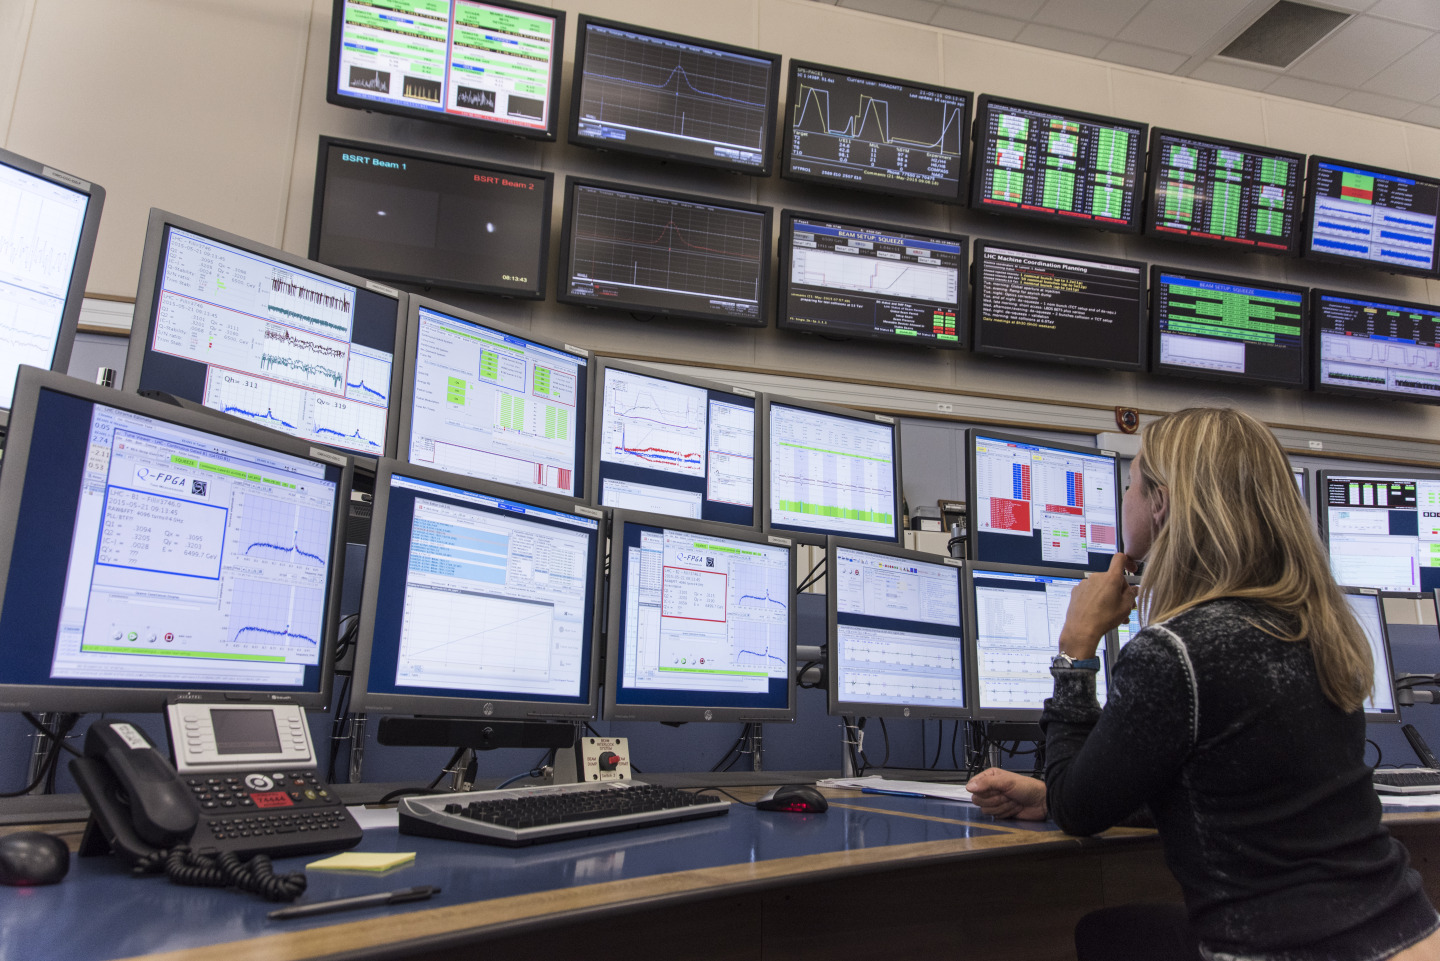 CERN Control Centre (CCC) - Collision tests at record-breaking energy of 13 TeV